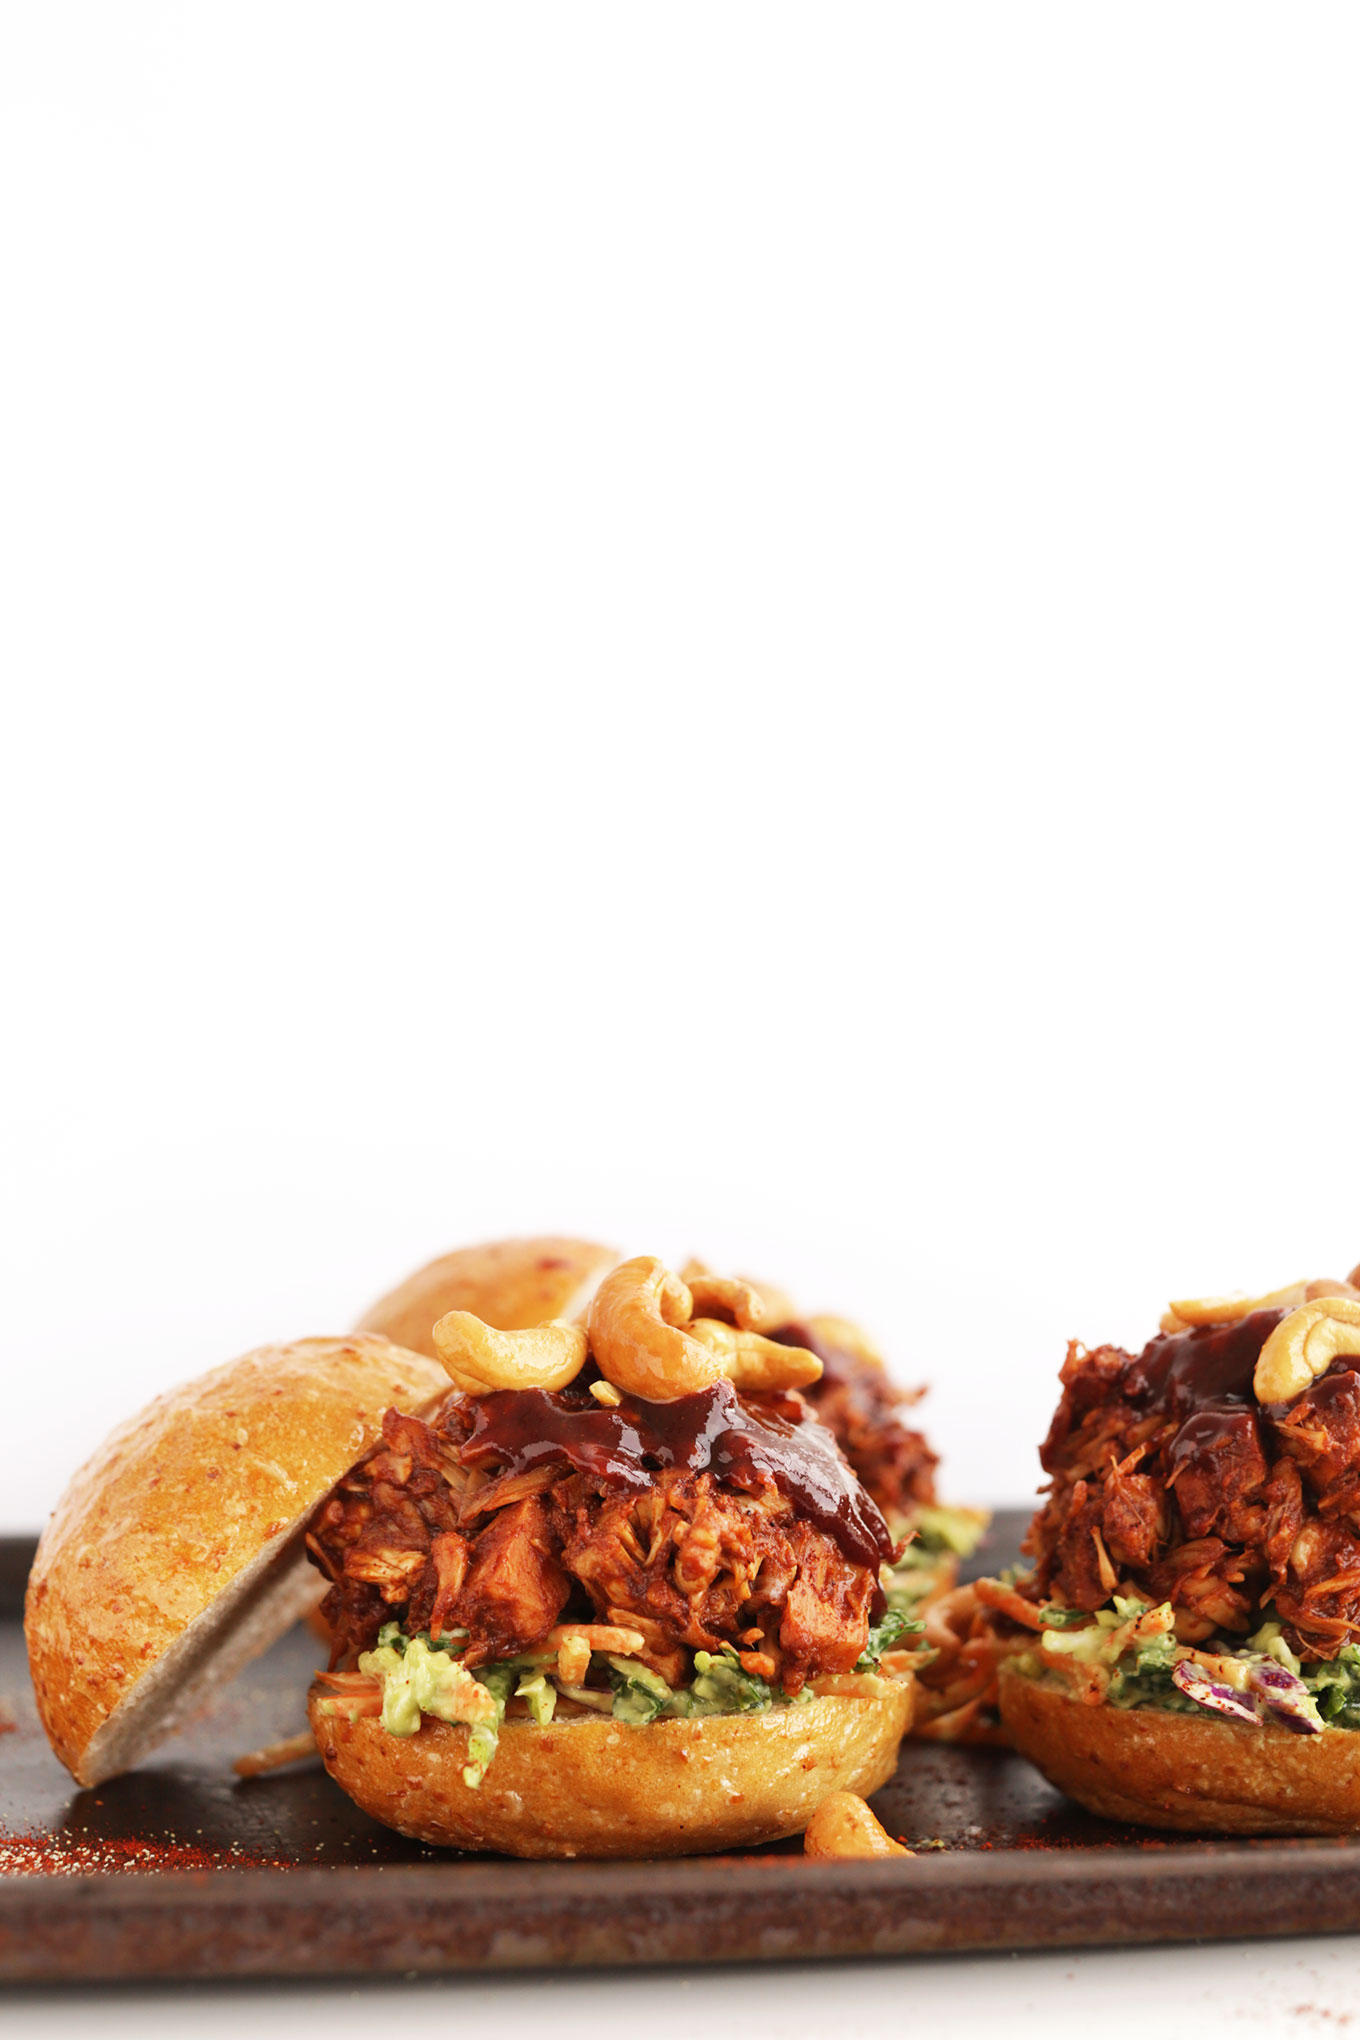 BBQ Jackfruit Sandwiches with Avocado Slaw for a gluten-free vegan dinner